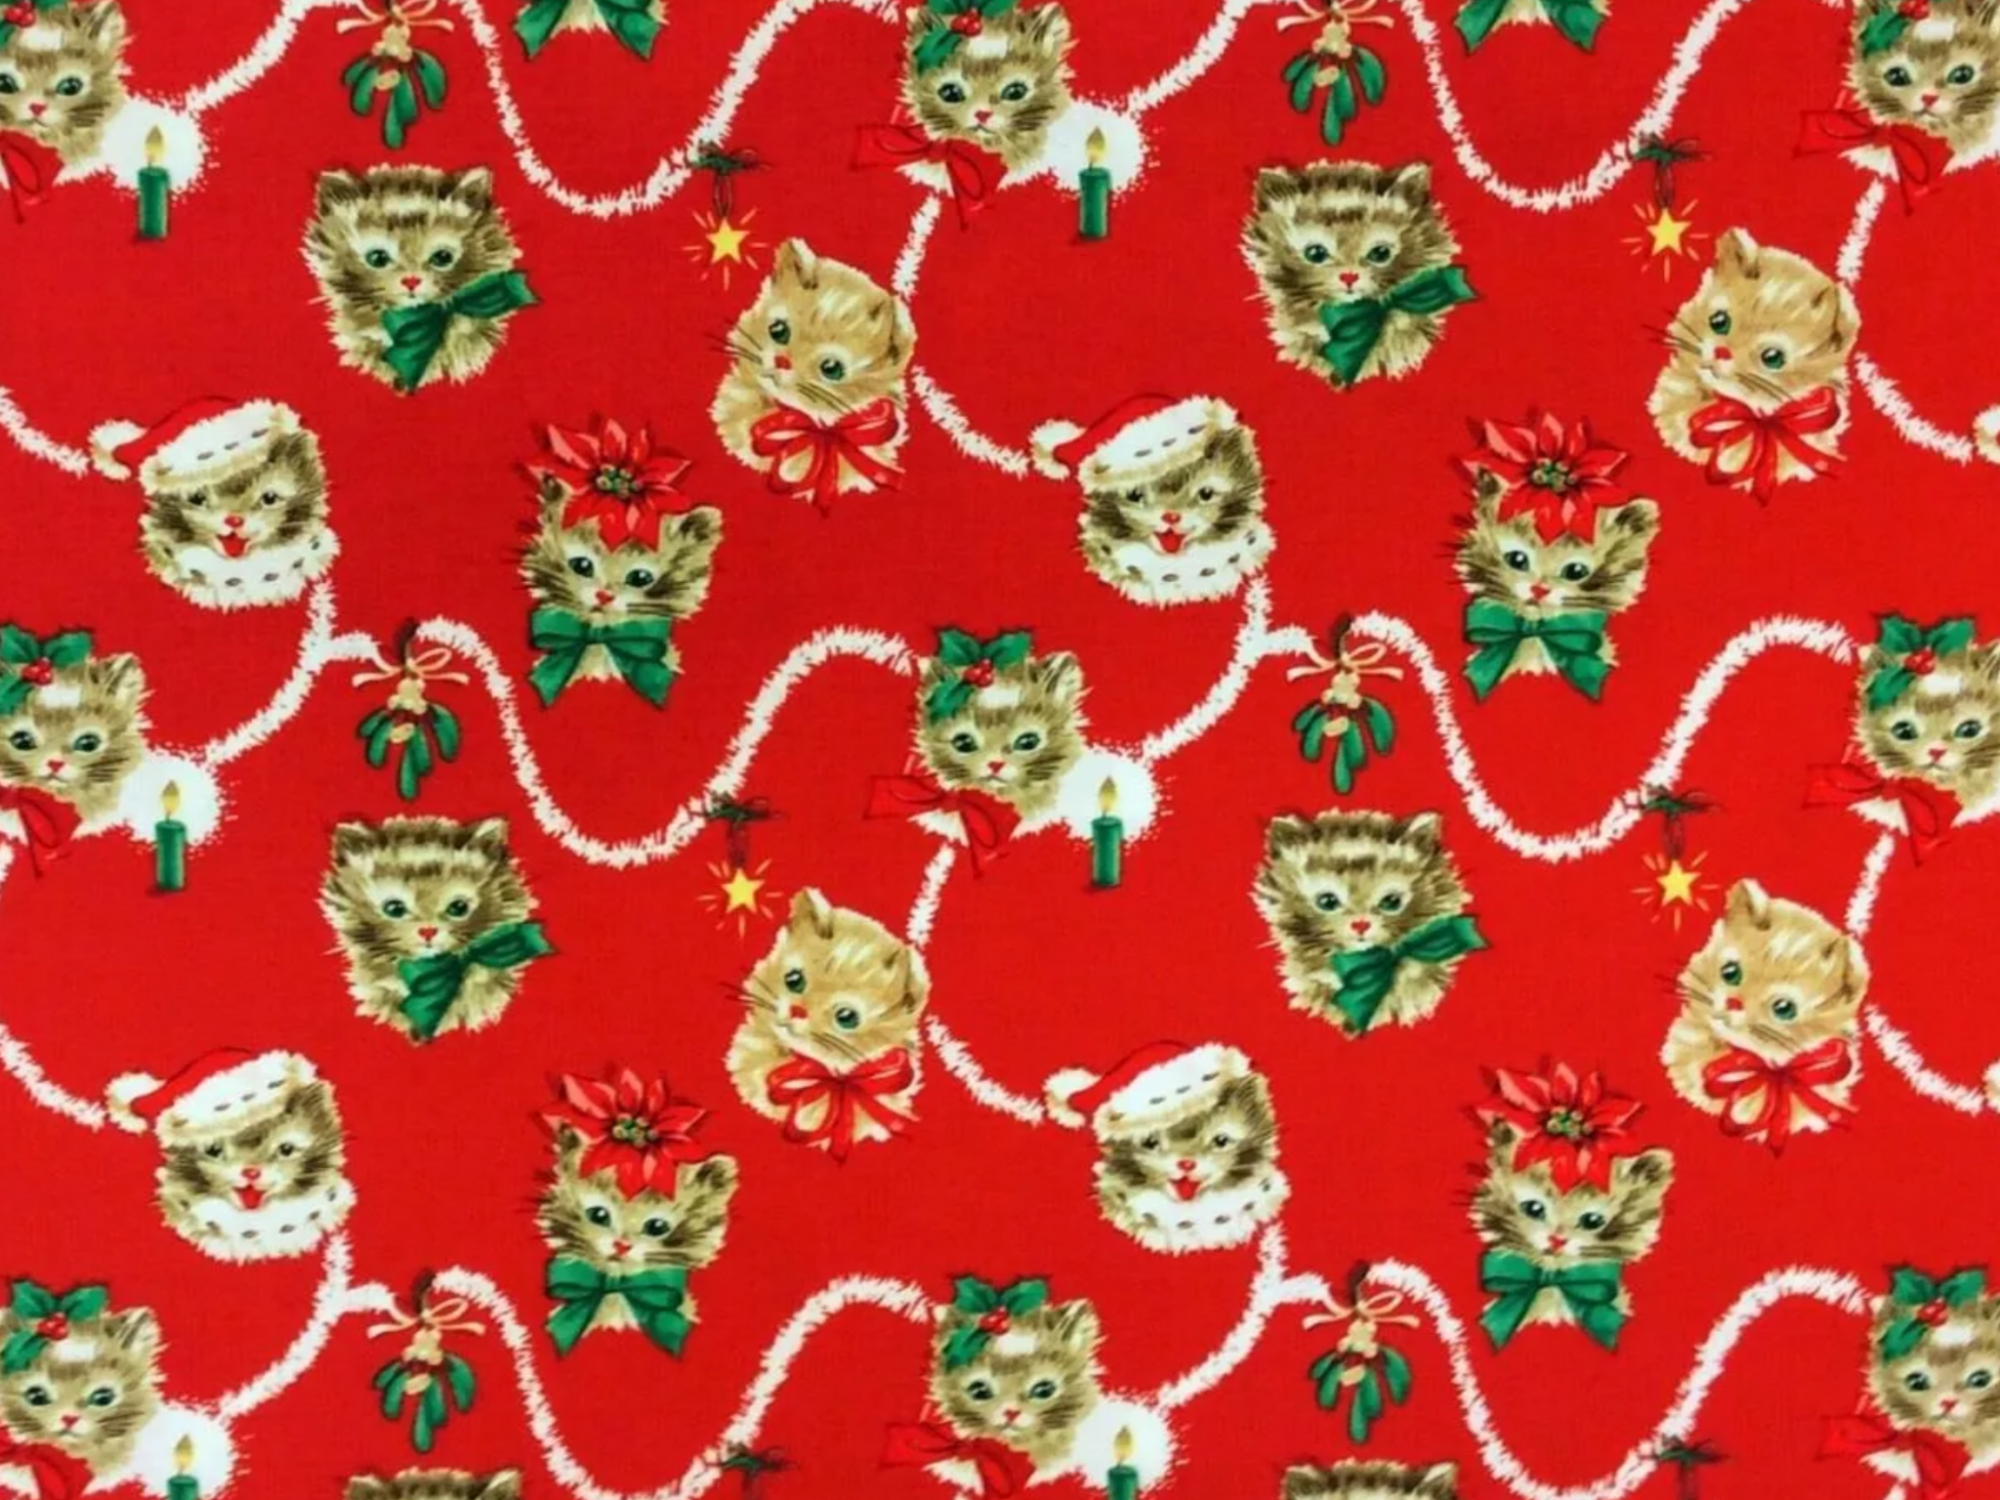 Christmas Cat Lover Kitty Cute Mistletoe Poinsettia Cotton Quilt Fabric MM115